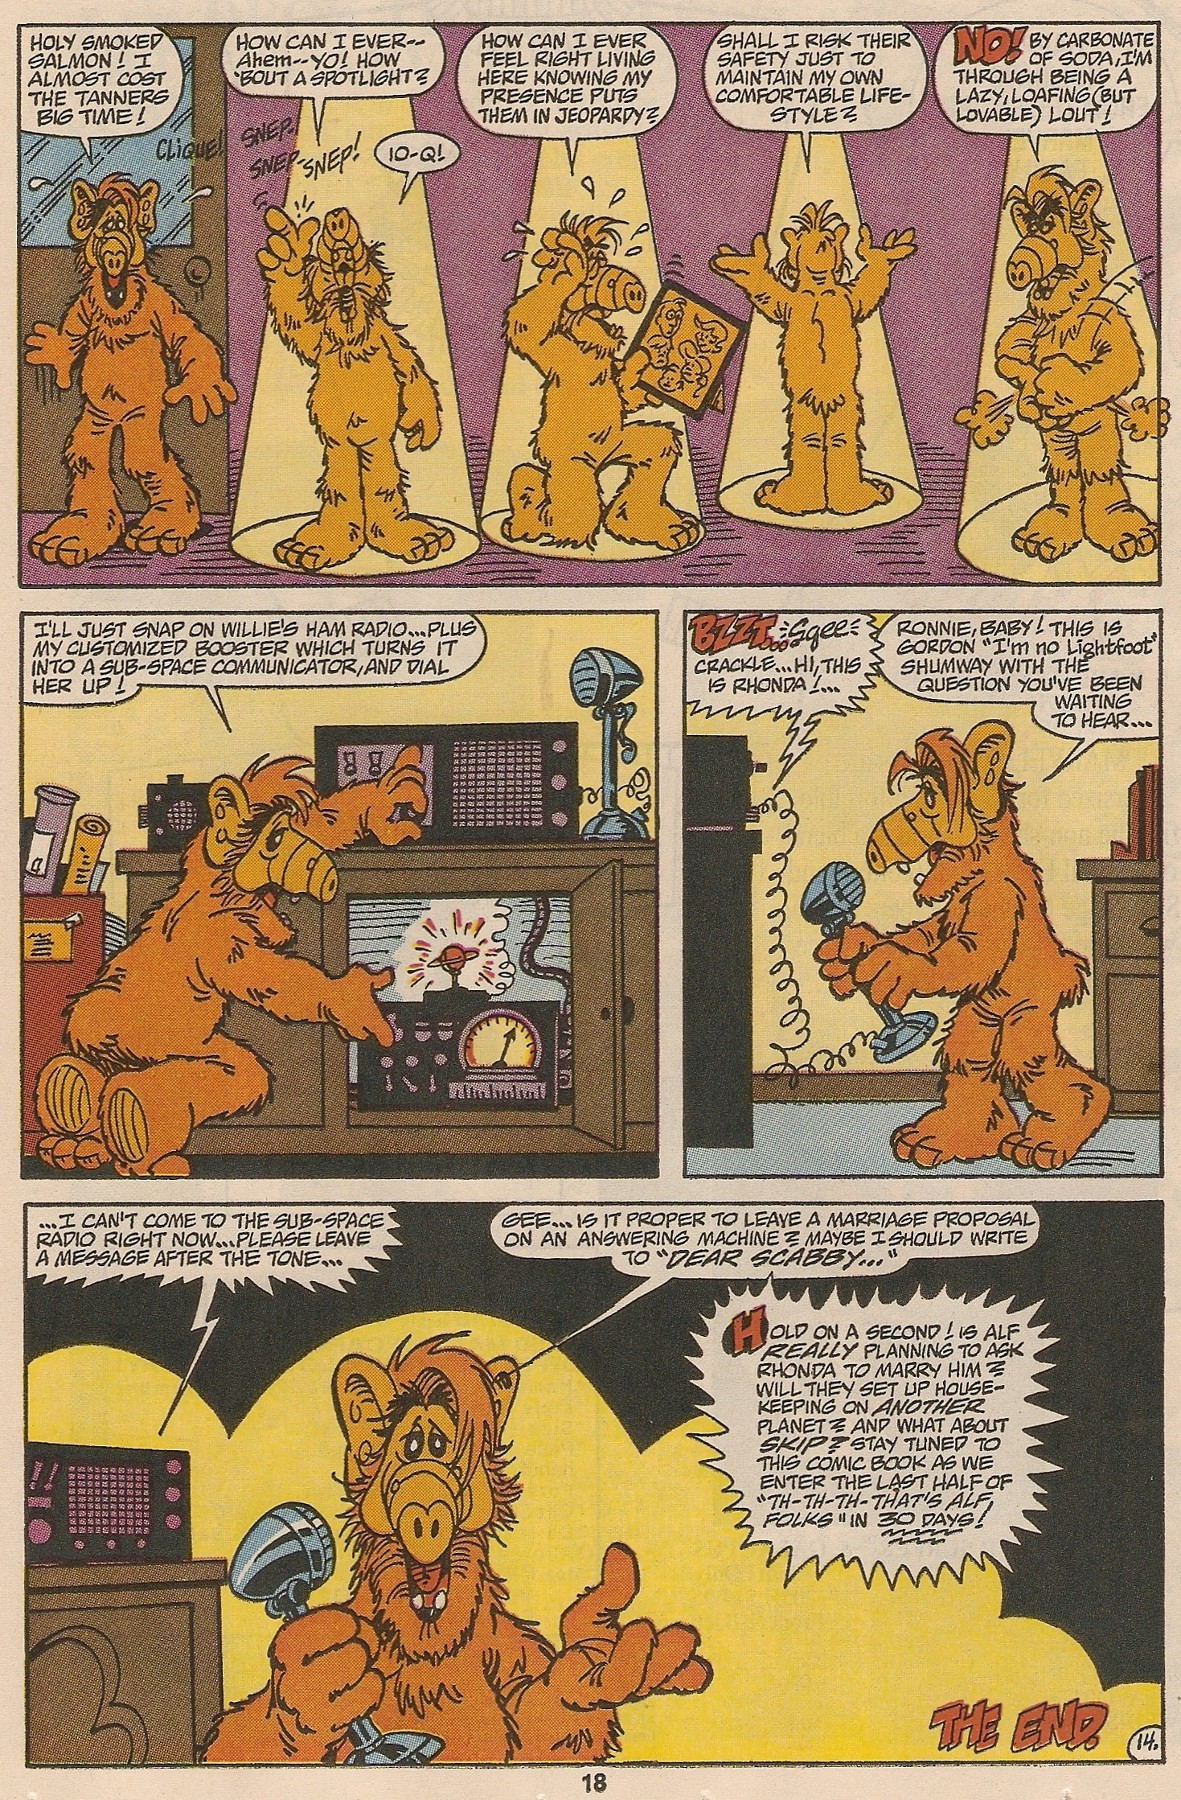 Read online ALF comic -  Issue #48 - 20